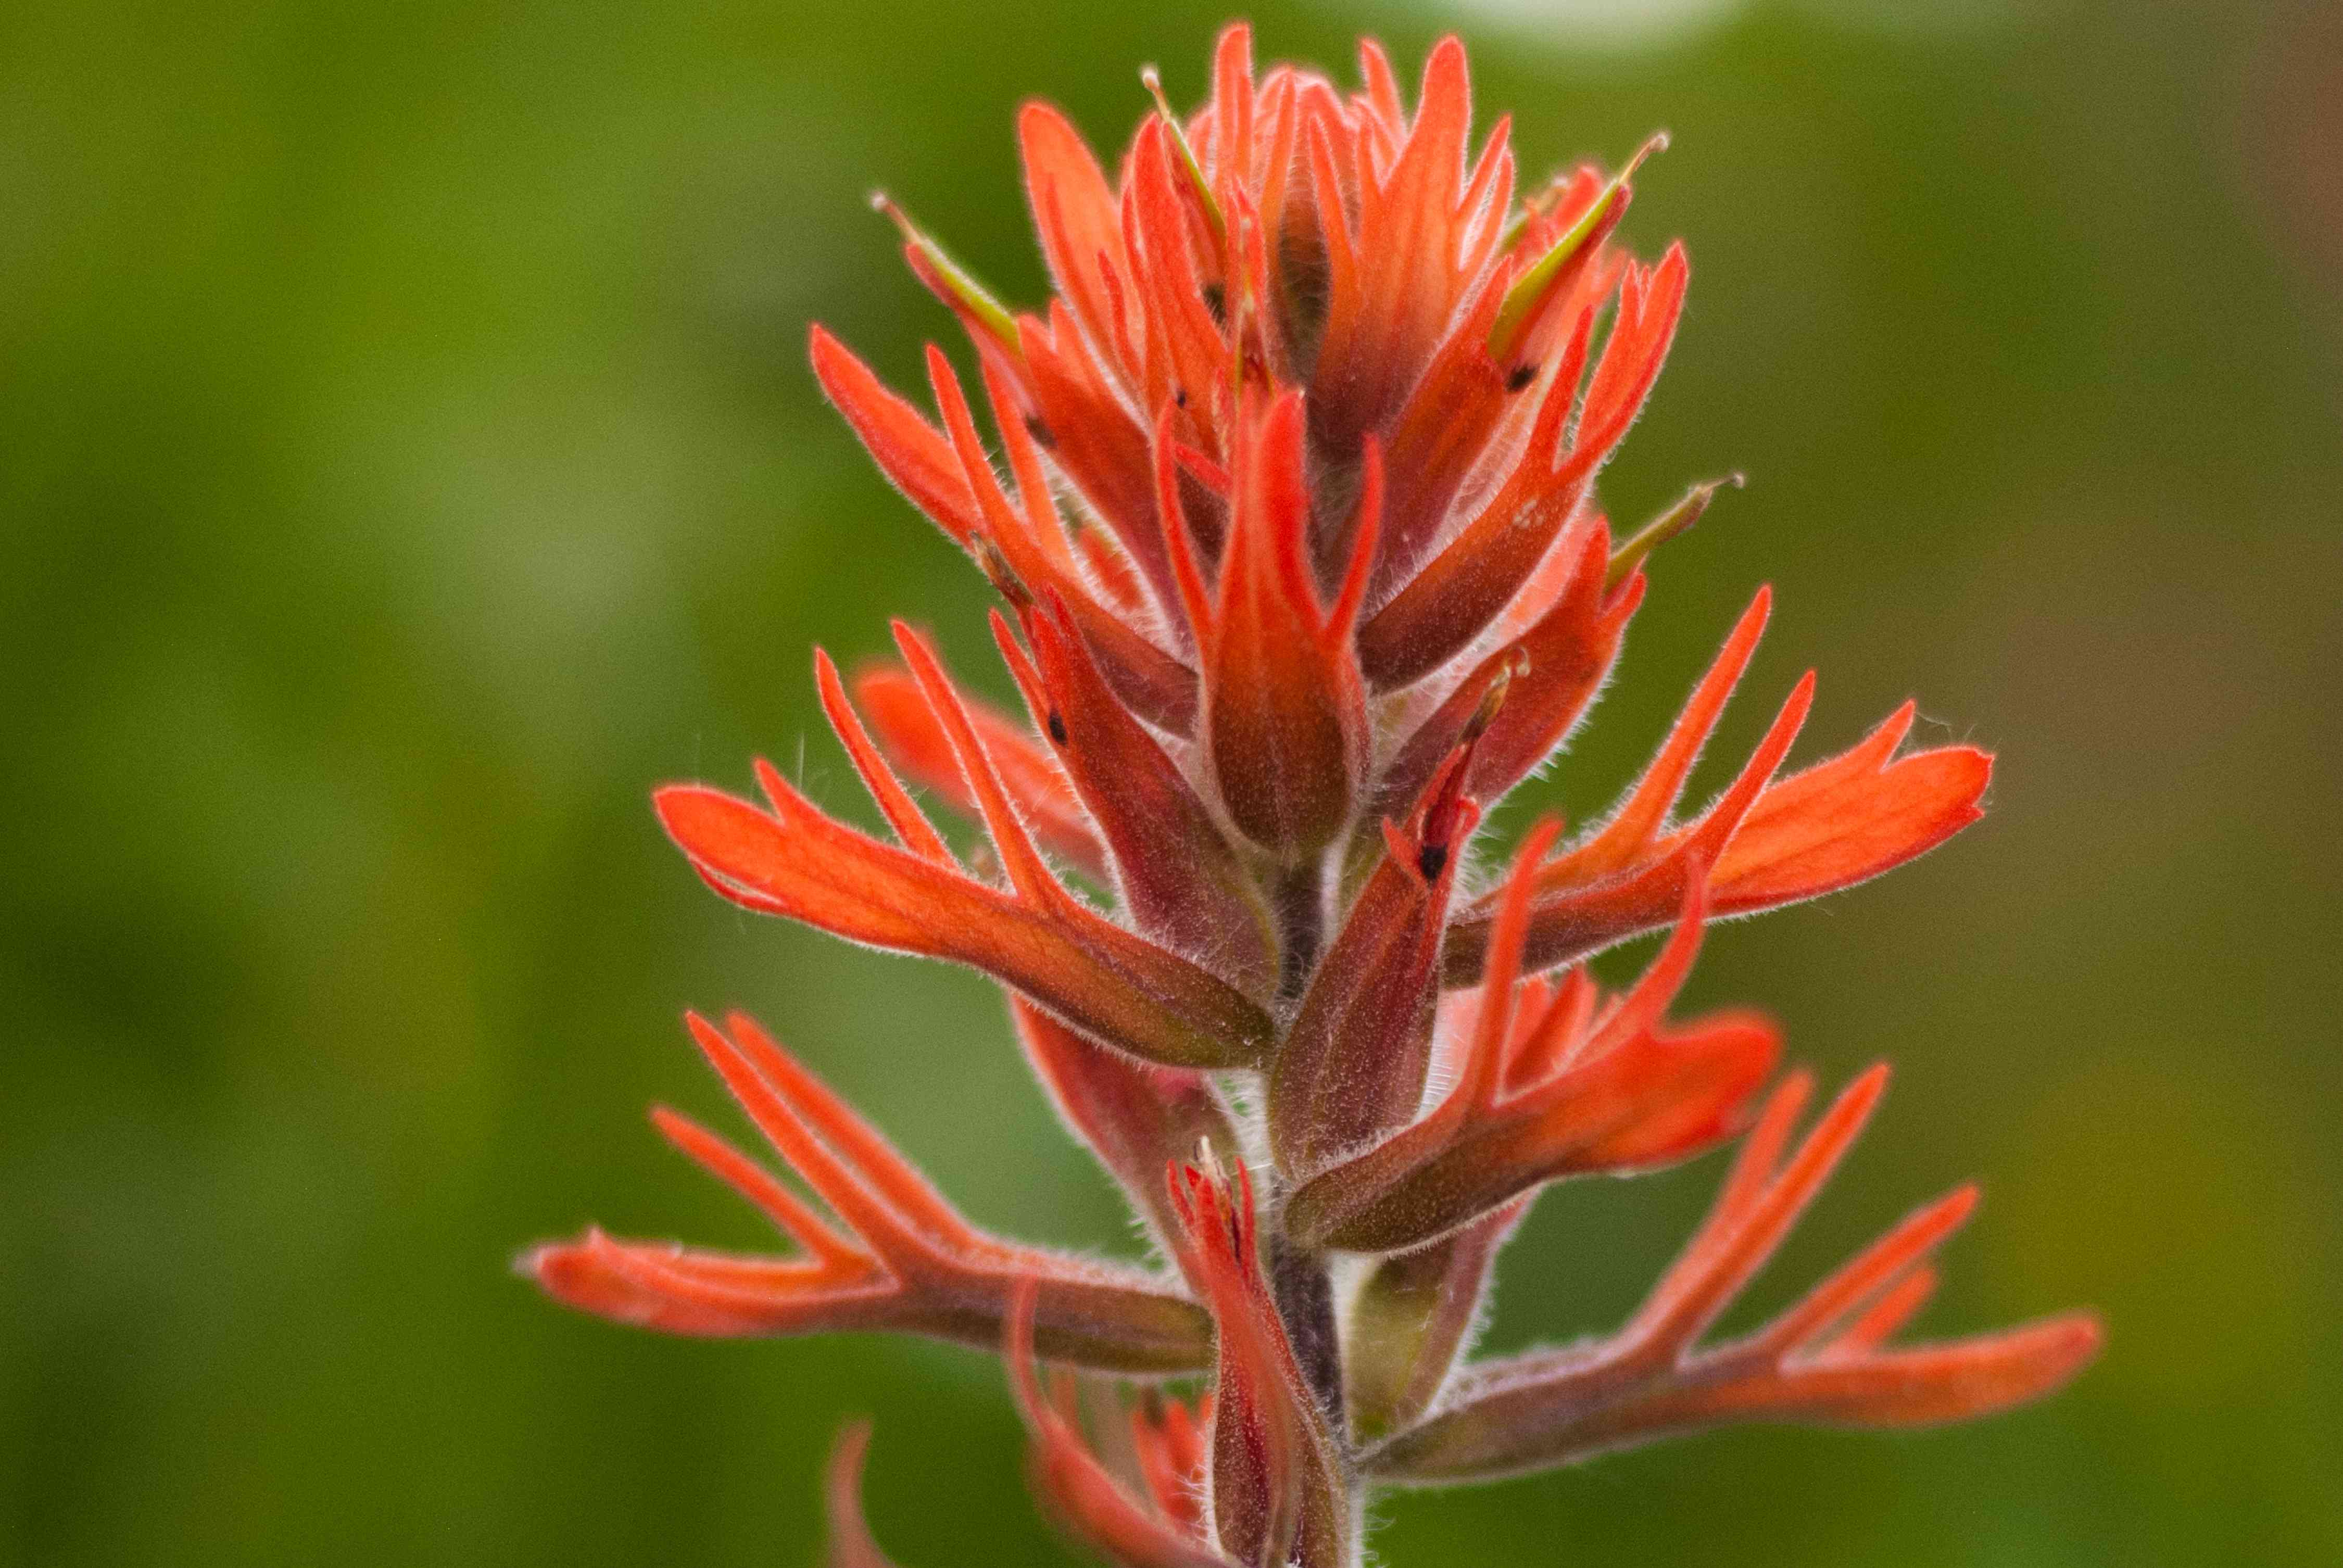 Scarlet painted cup plant flower with red-orange bracts closeup